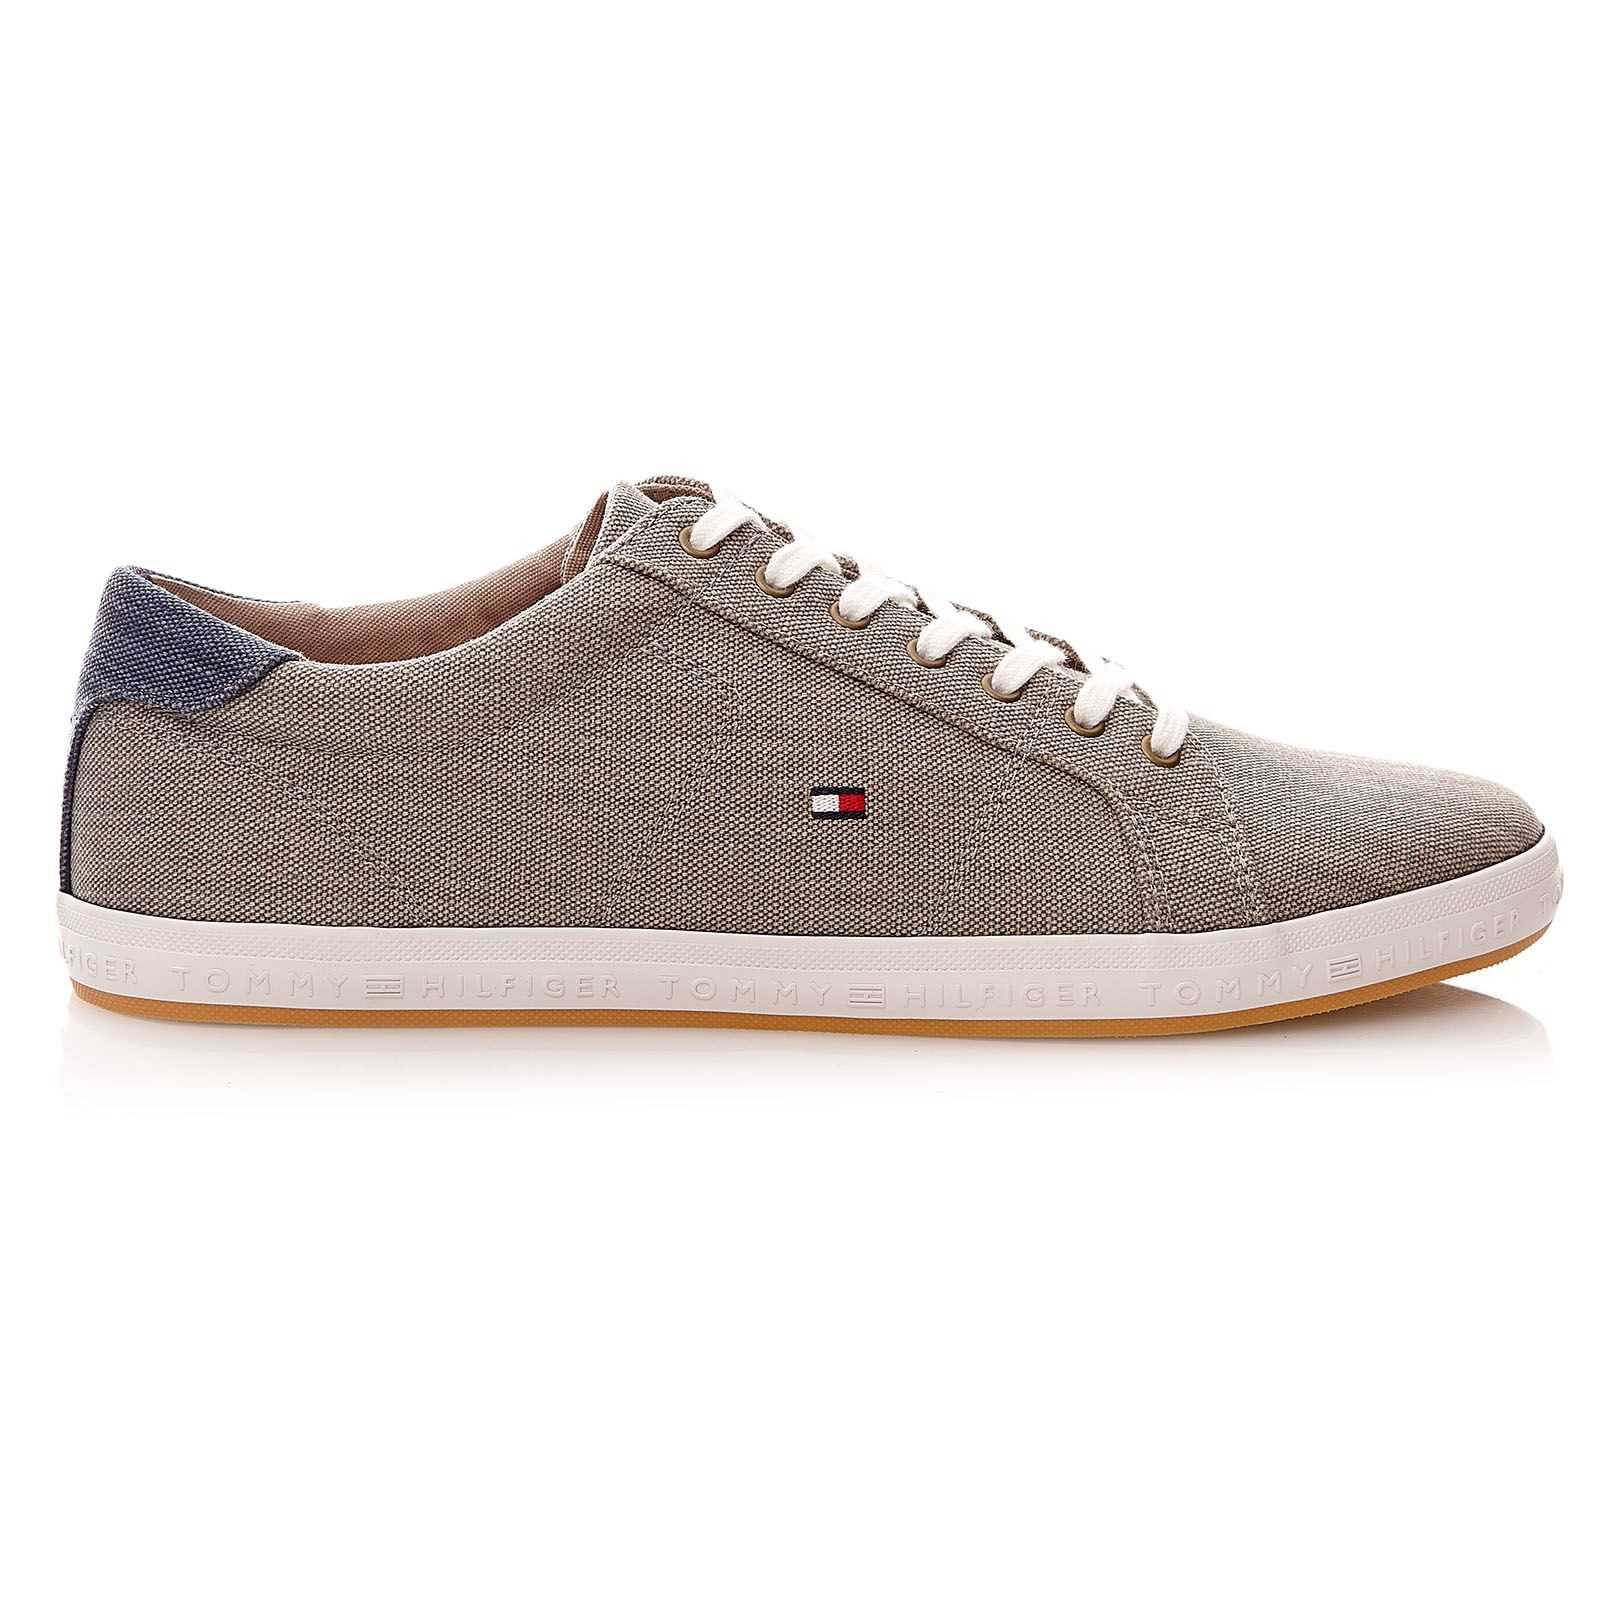 Tommy Hilfiger Chaussures HOWELL 1 Tommy Hilfiger soldes 7R9cRdW89